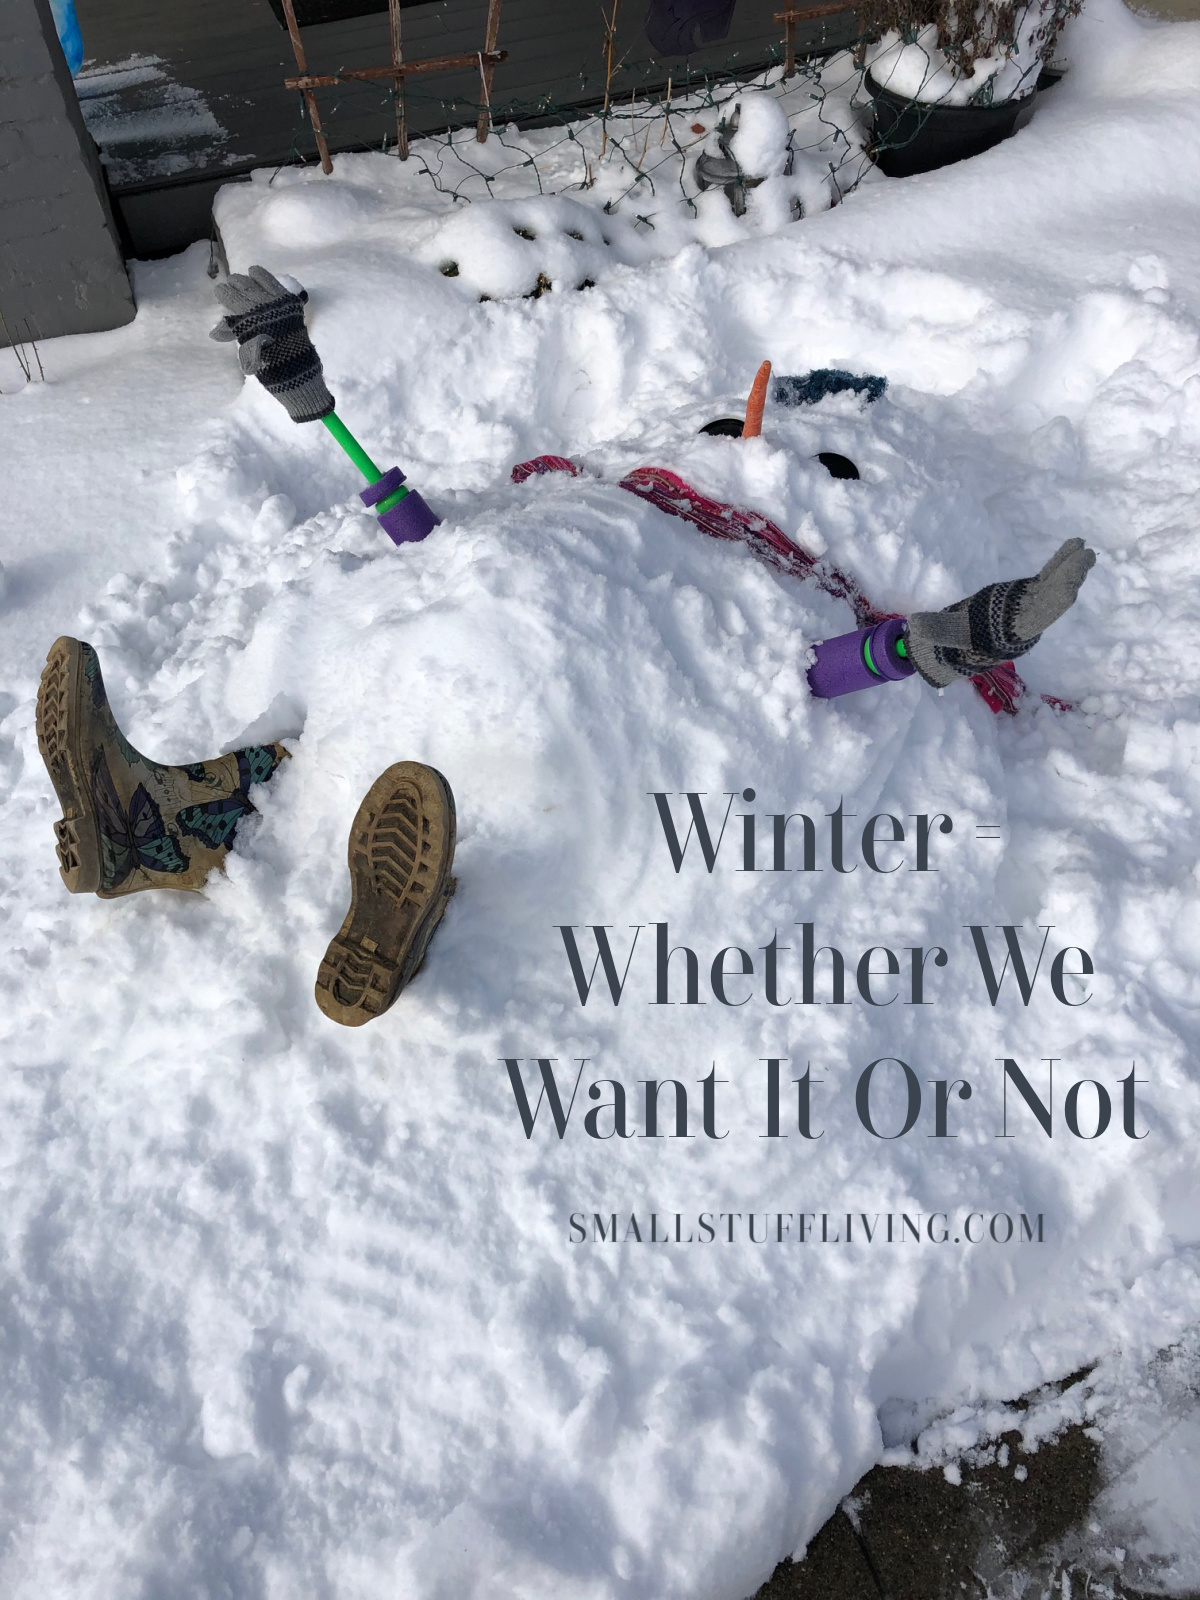 Winter and a Helping Hand – Whether We Want It Or Not